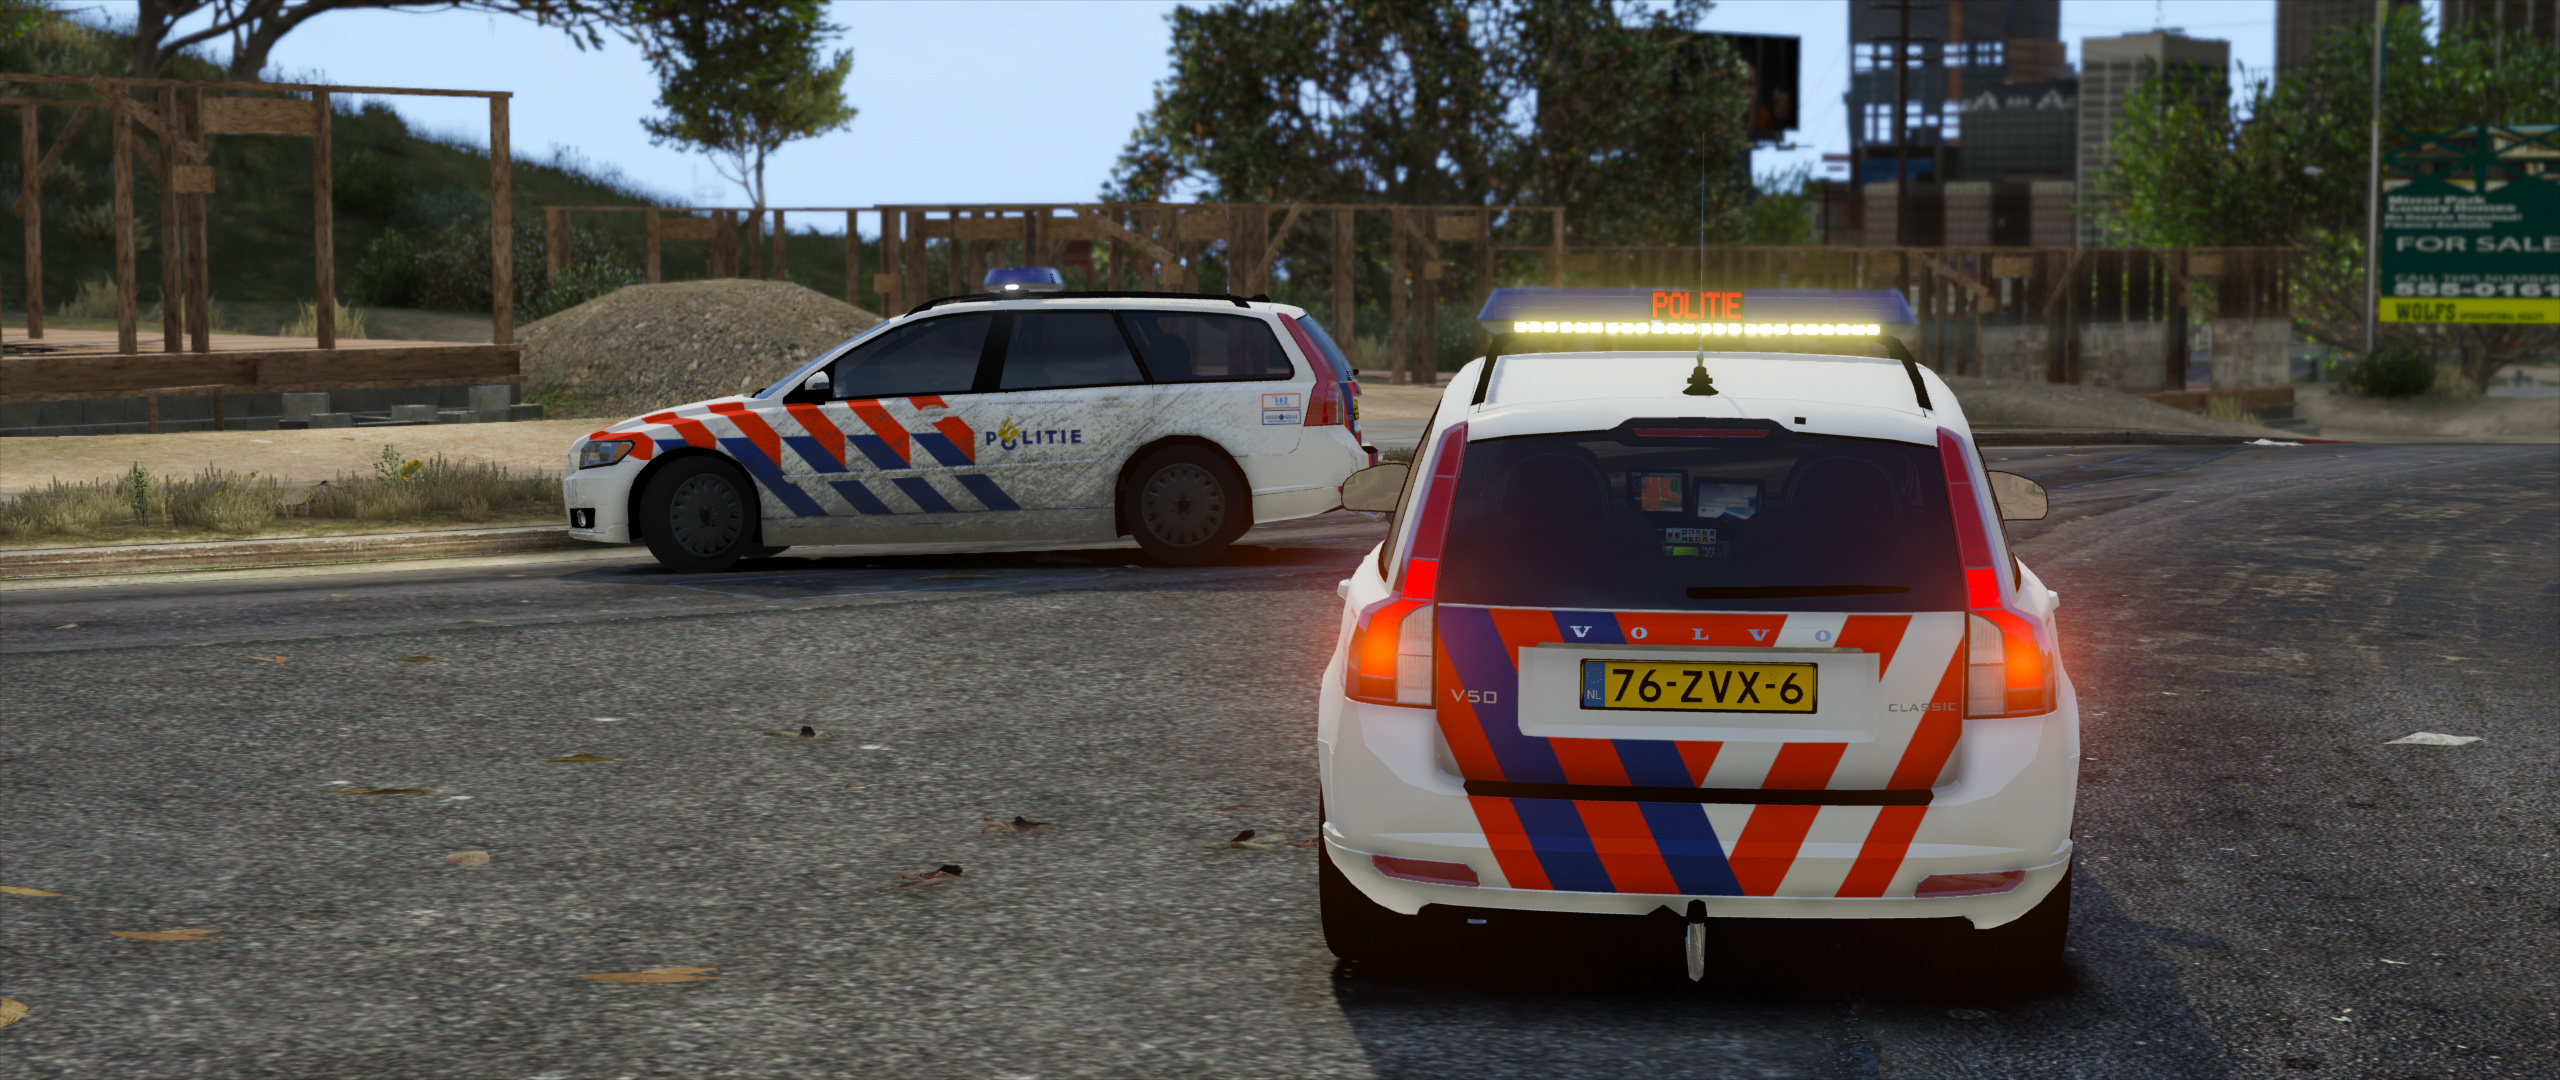 volvo v50 dutch police teammoh gta5. Black Bedroom Furniture Sets. Home Design Ideas